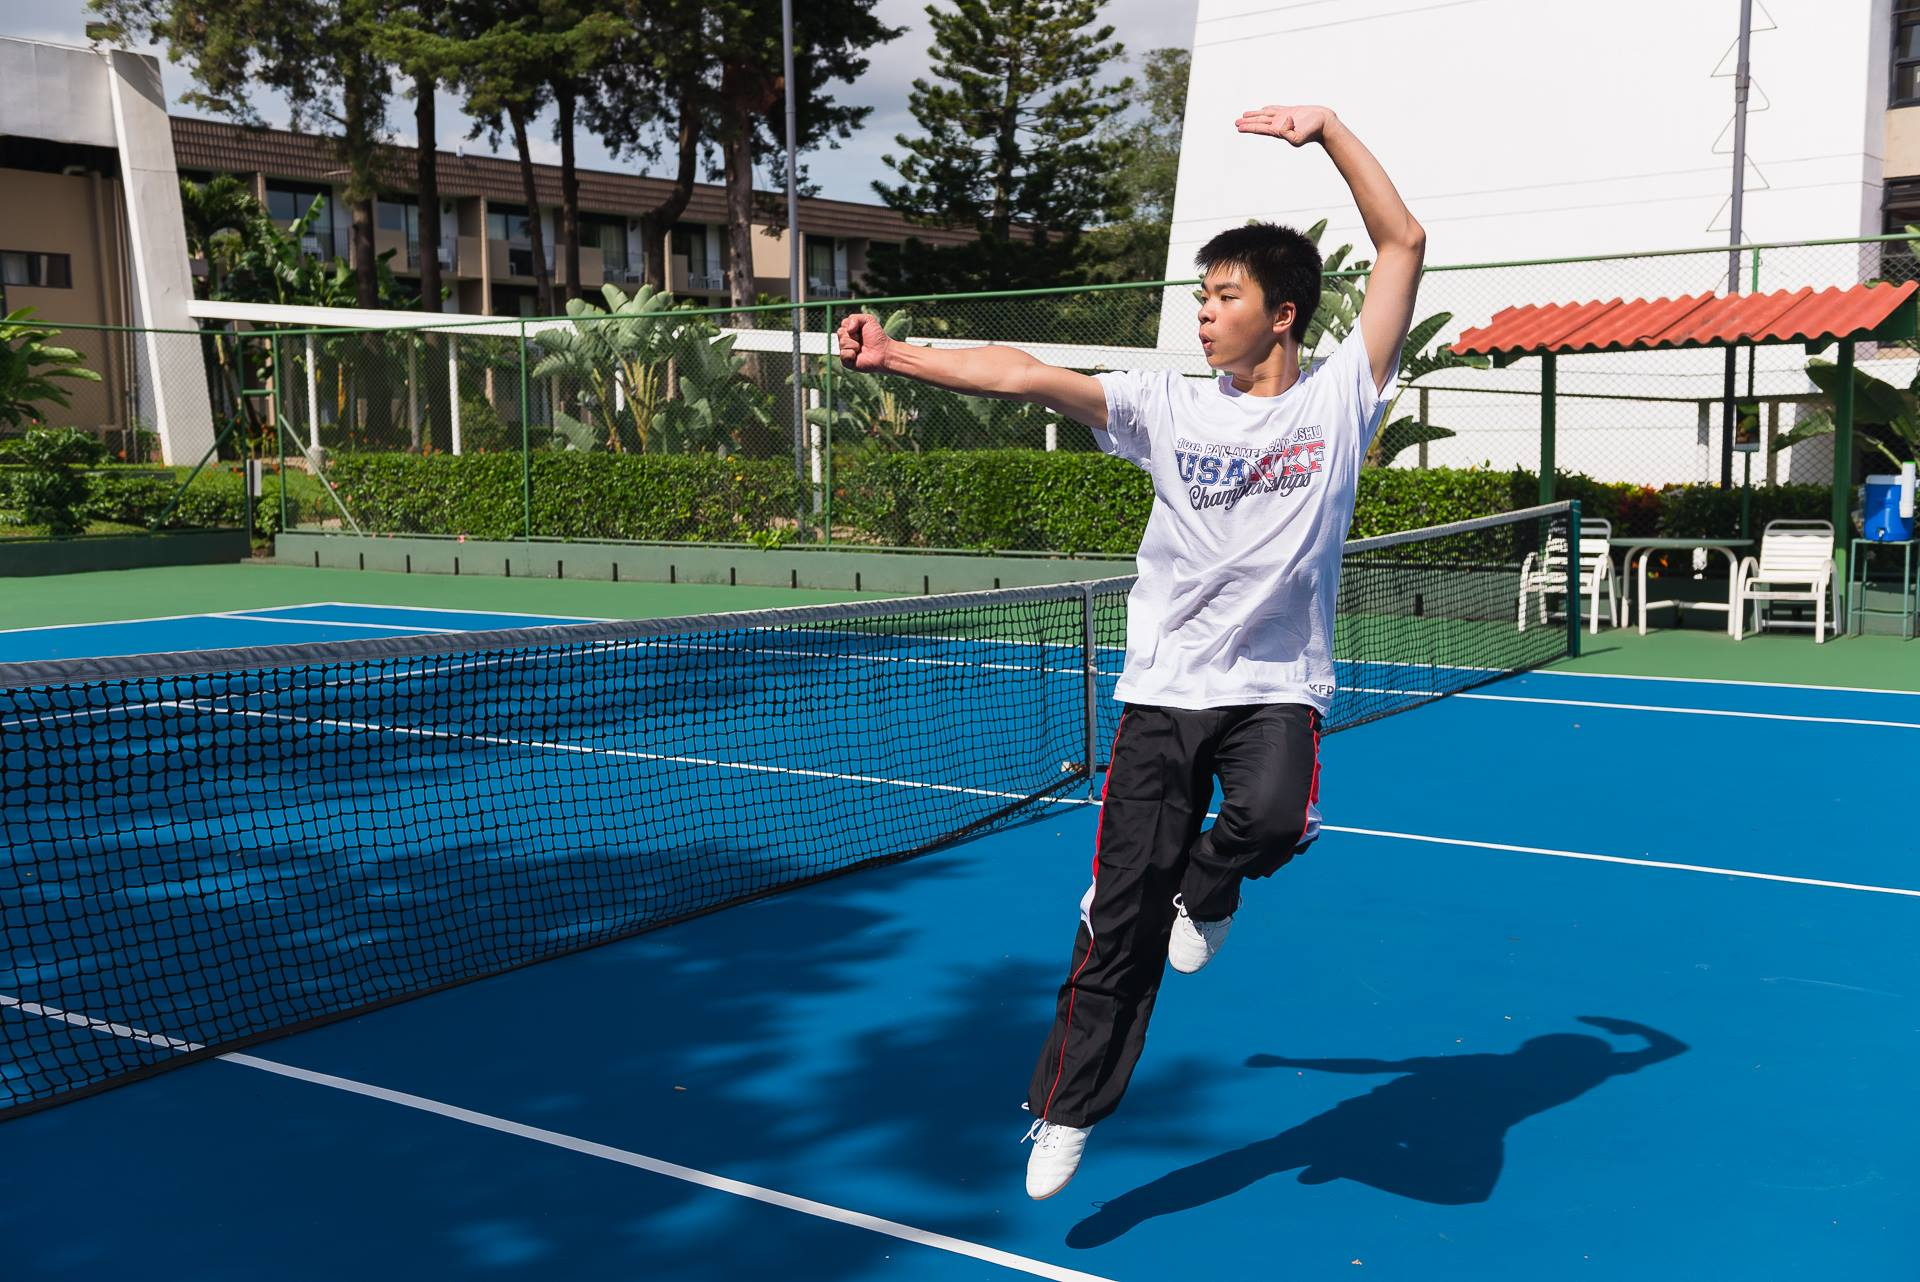 Senior Richard Li practices Wushu outside of school and has traveled to exotic locations such as Costa Rica to demonstrate his prowess in international competitions.